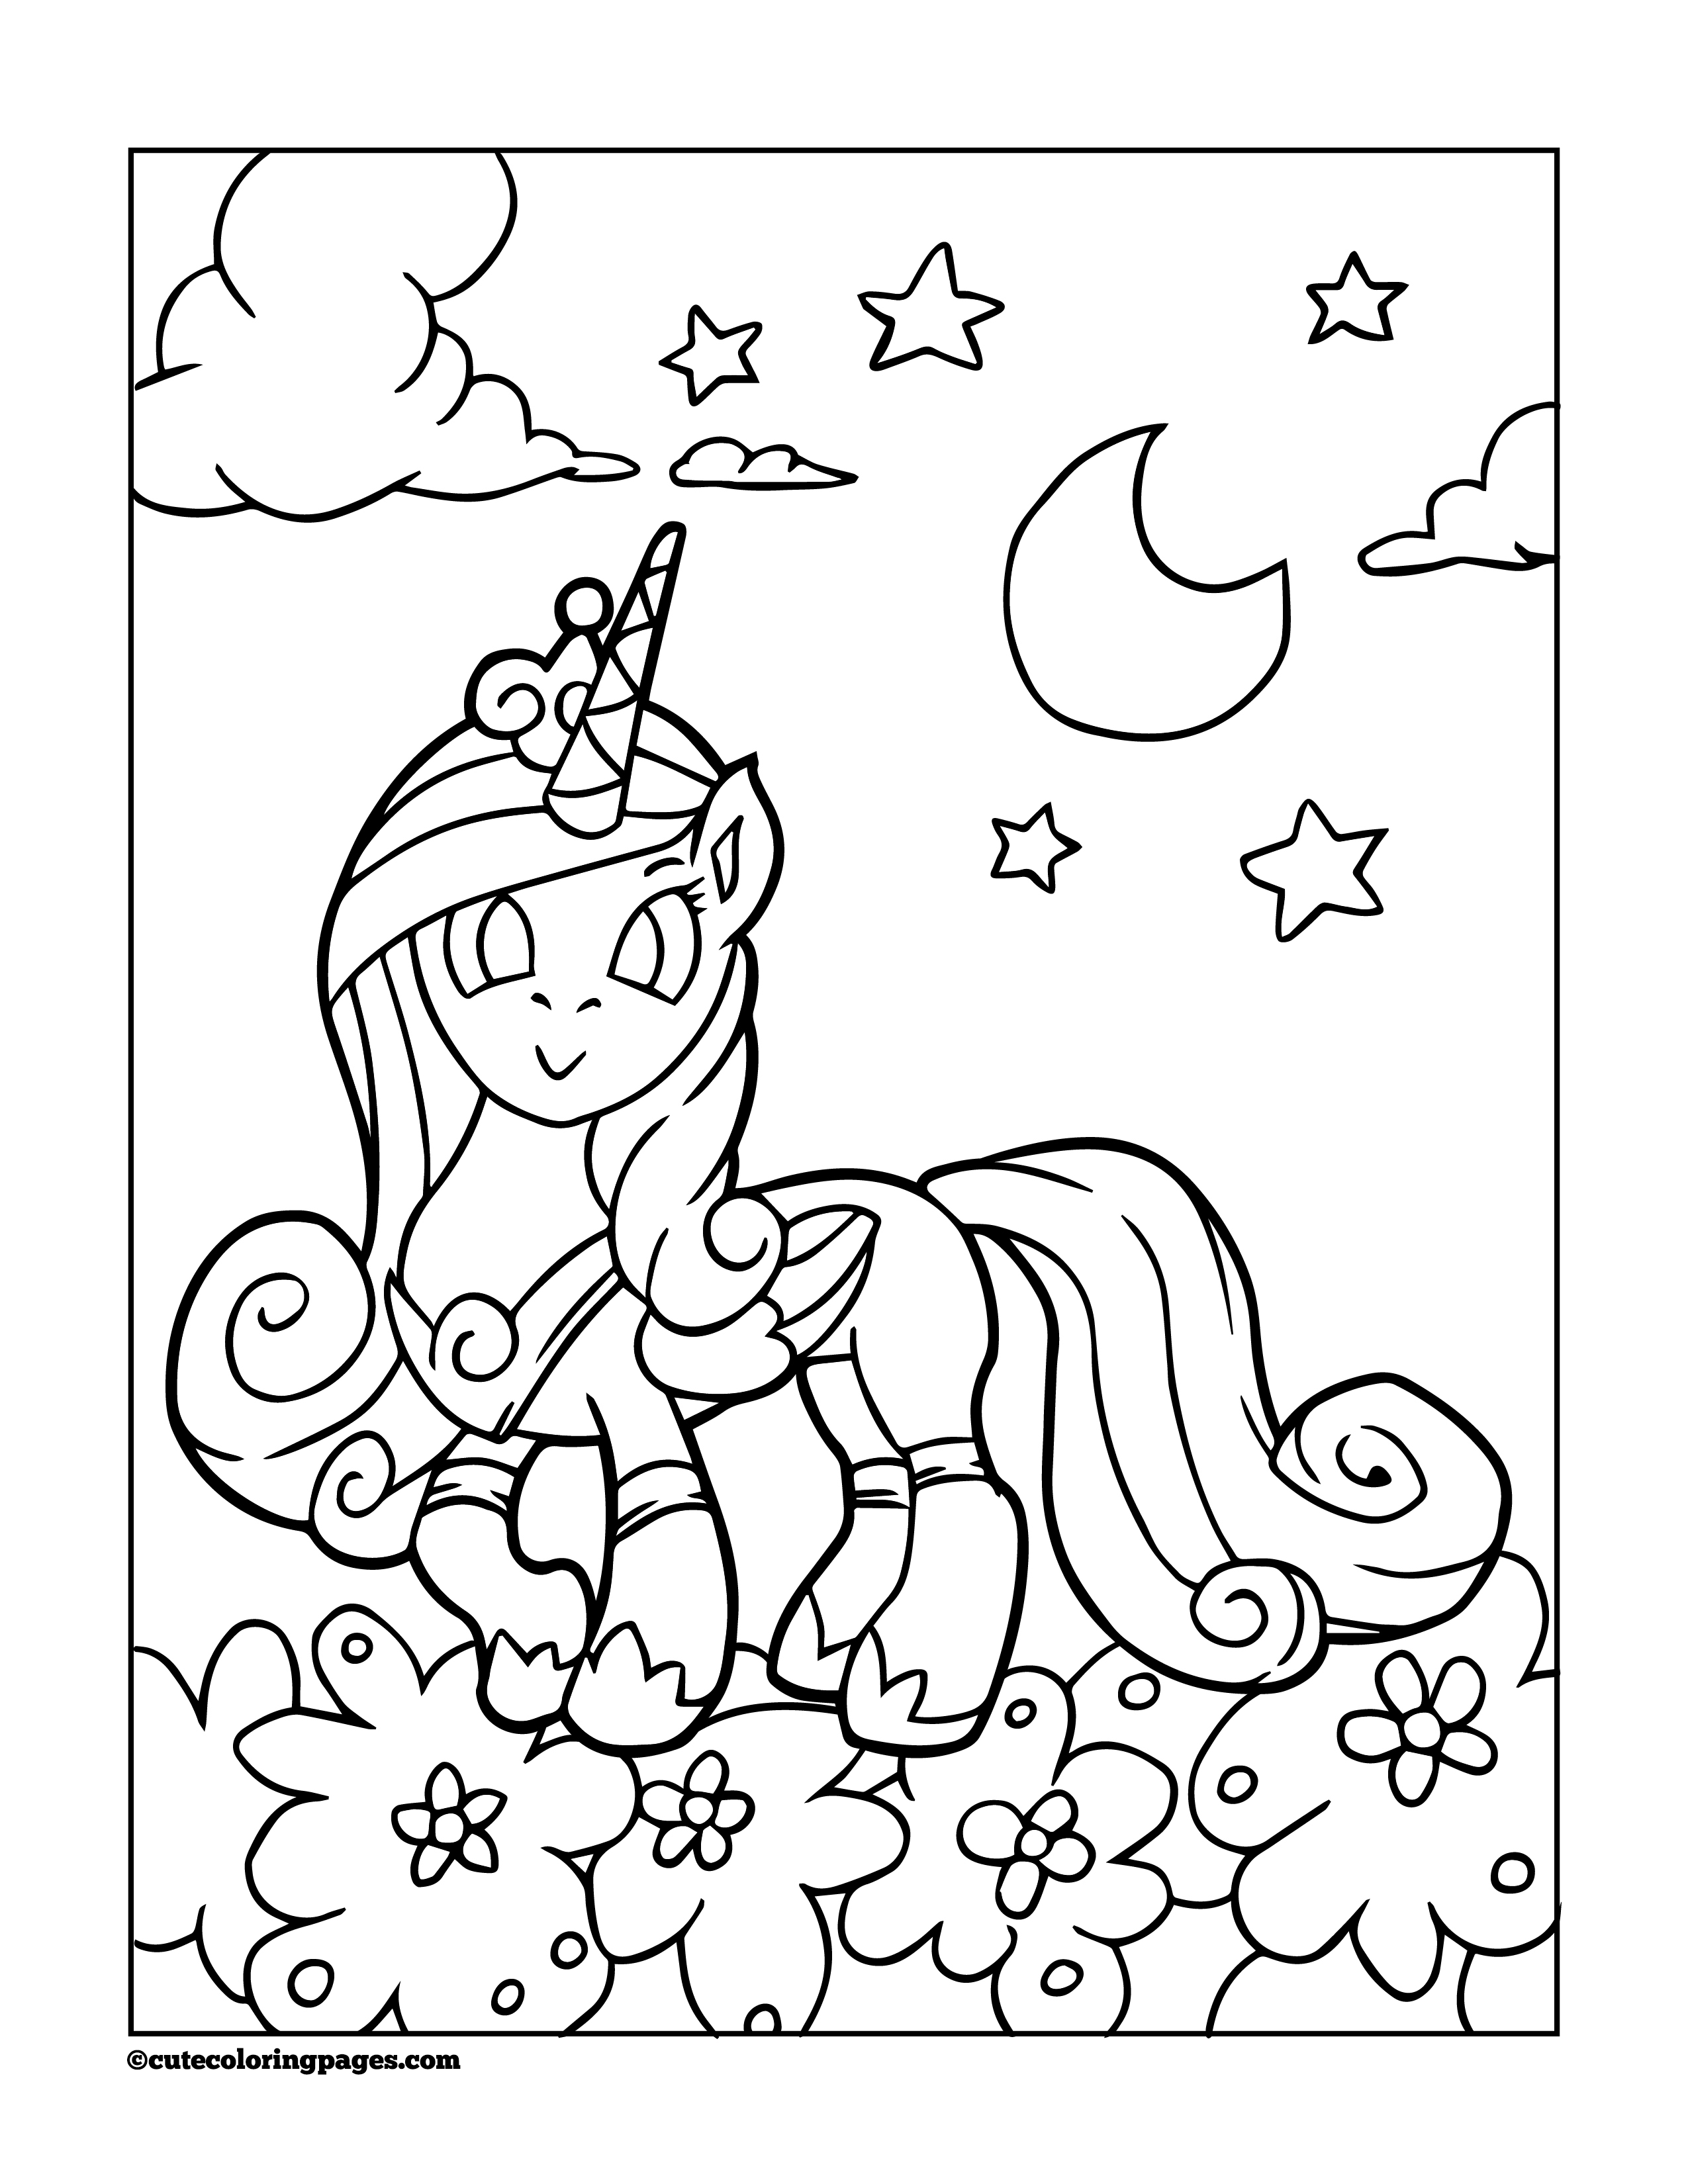 coloring pictures of unicorns unicorn coloring pages to download and print for free coloring pictures unicorns of